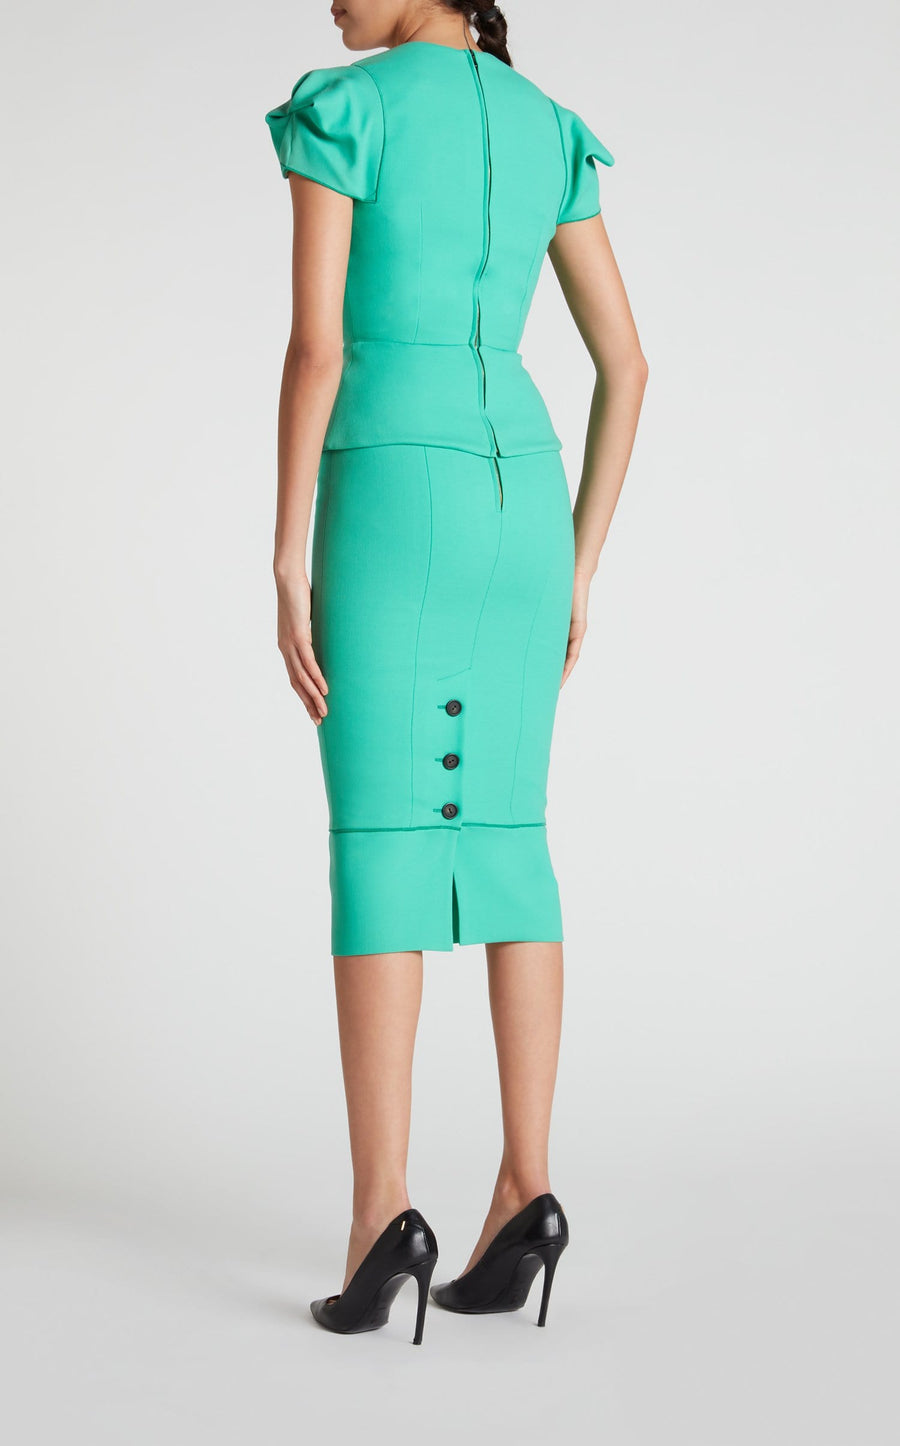 Galaxy Skirt In Peppermint Green from Roland Mouret